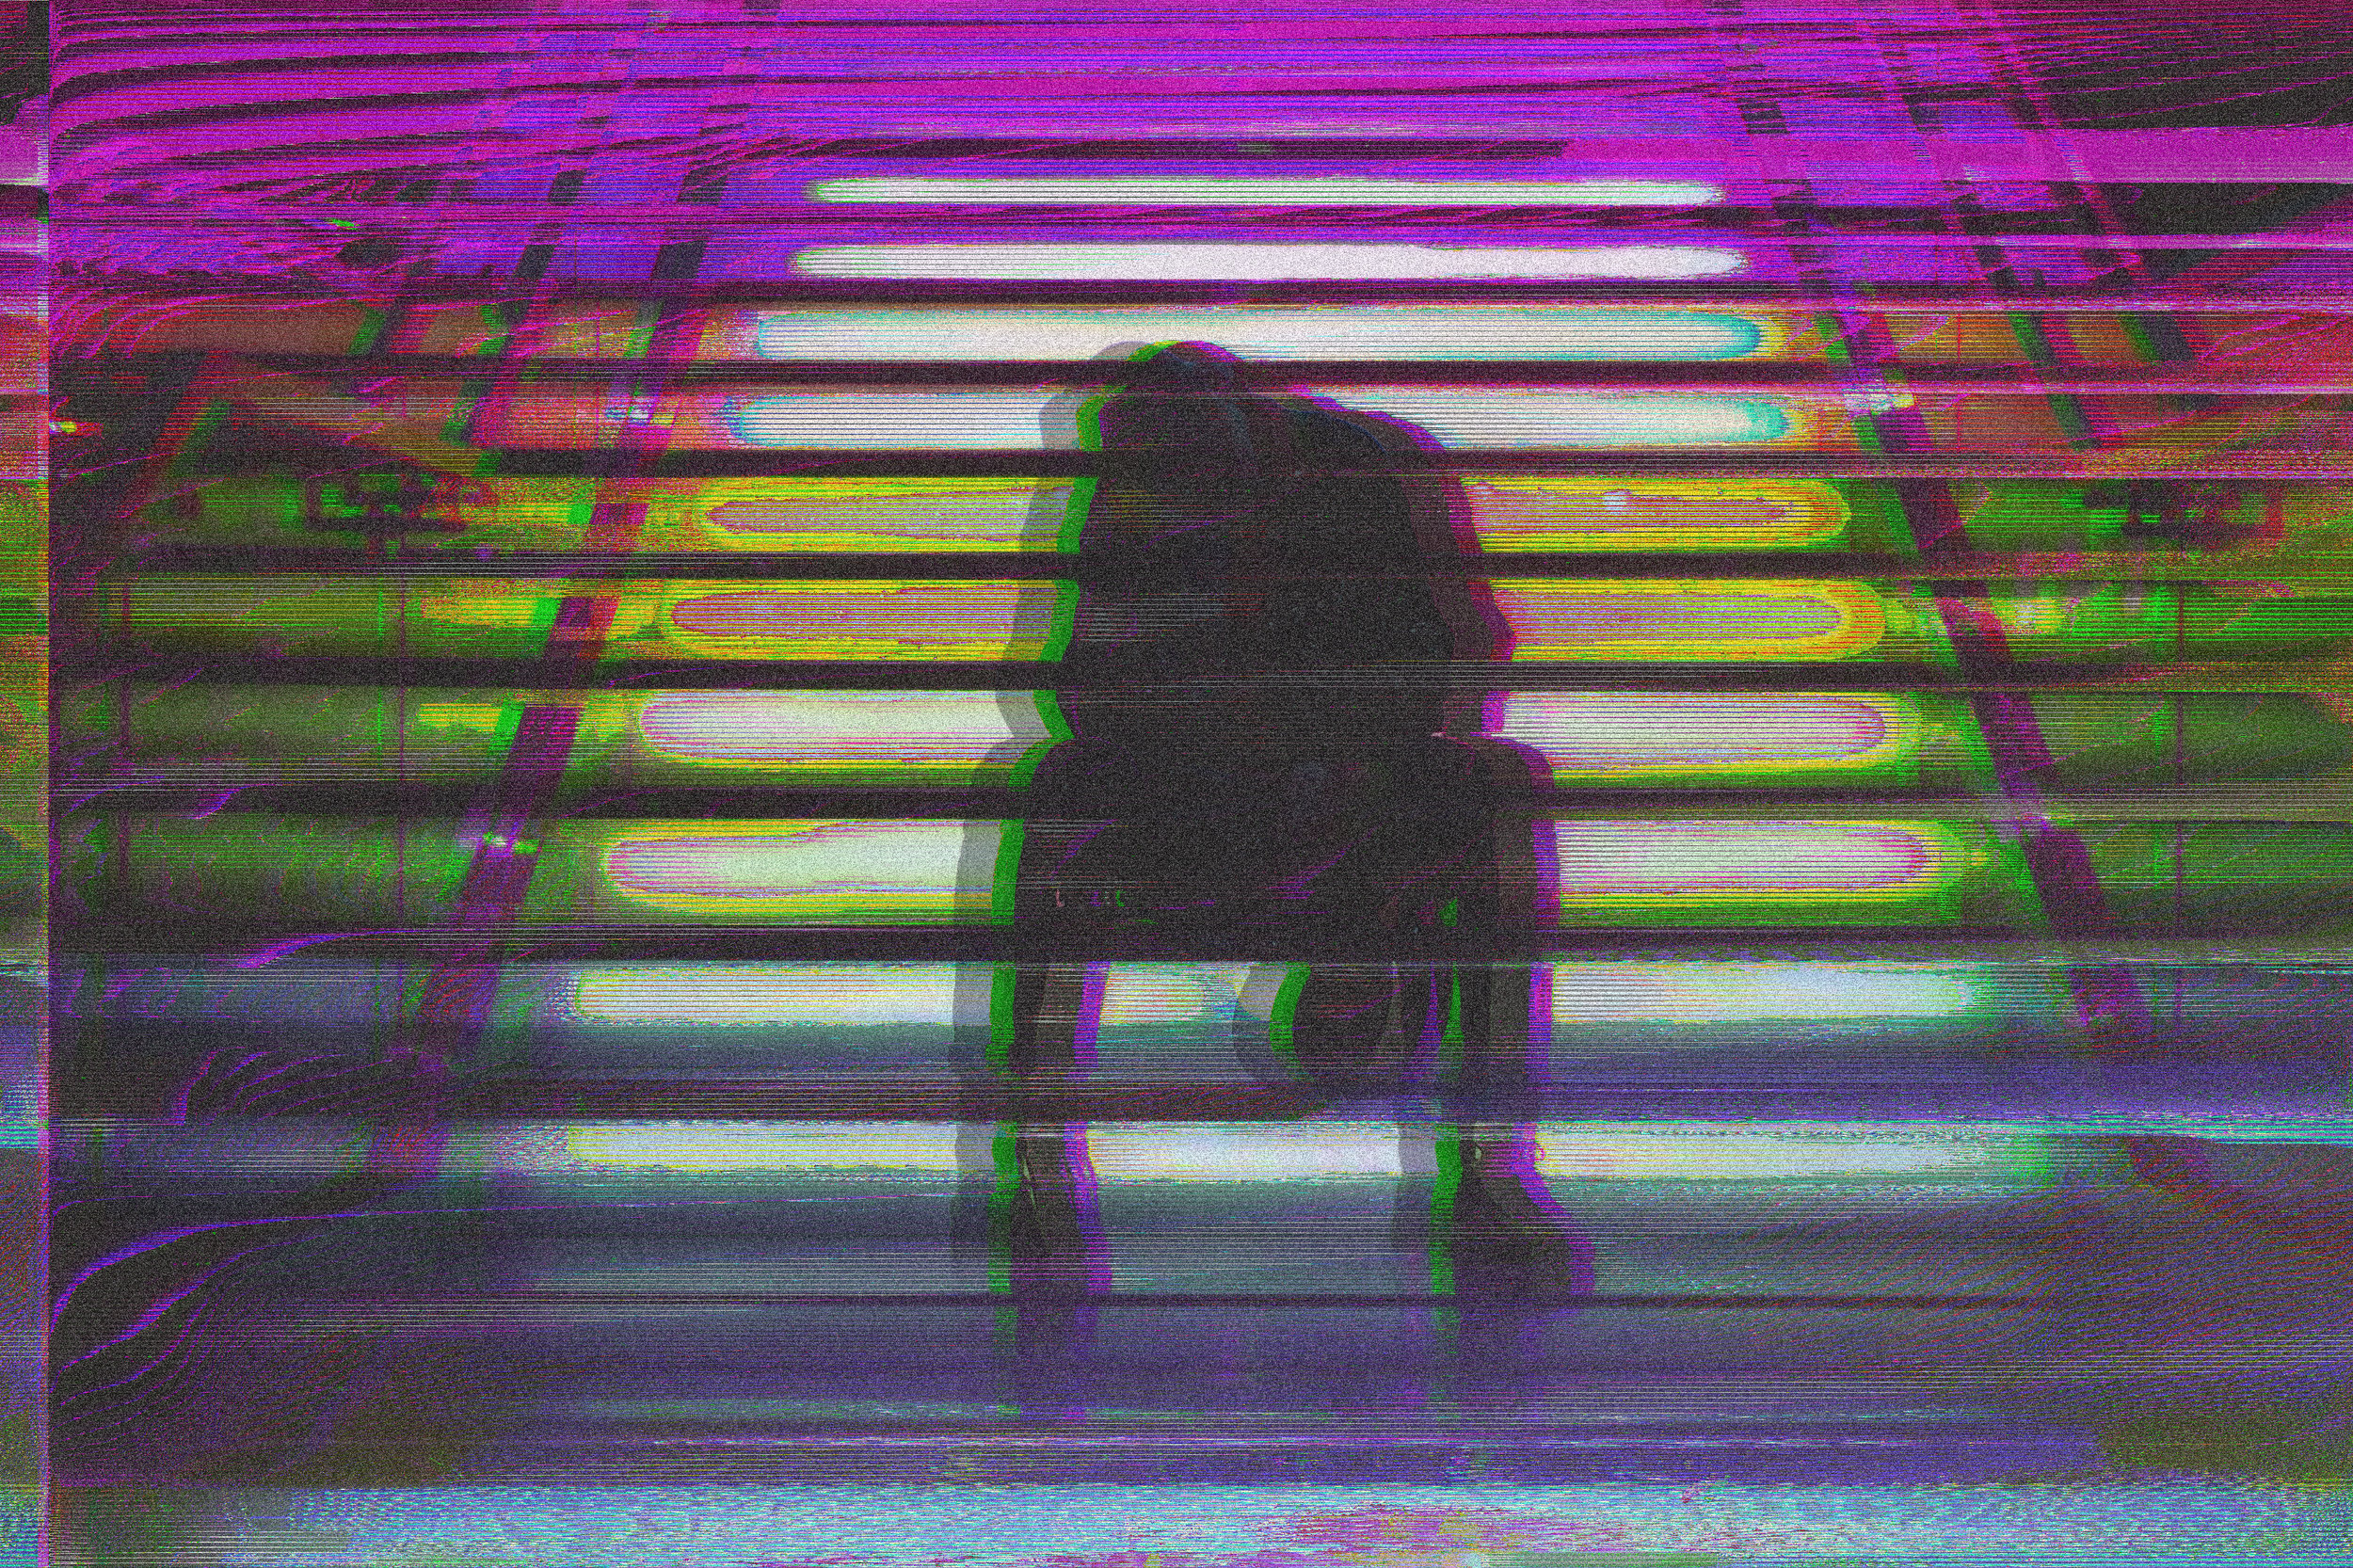 anaglych_2.0_18